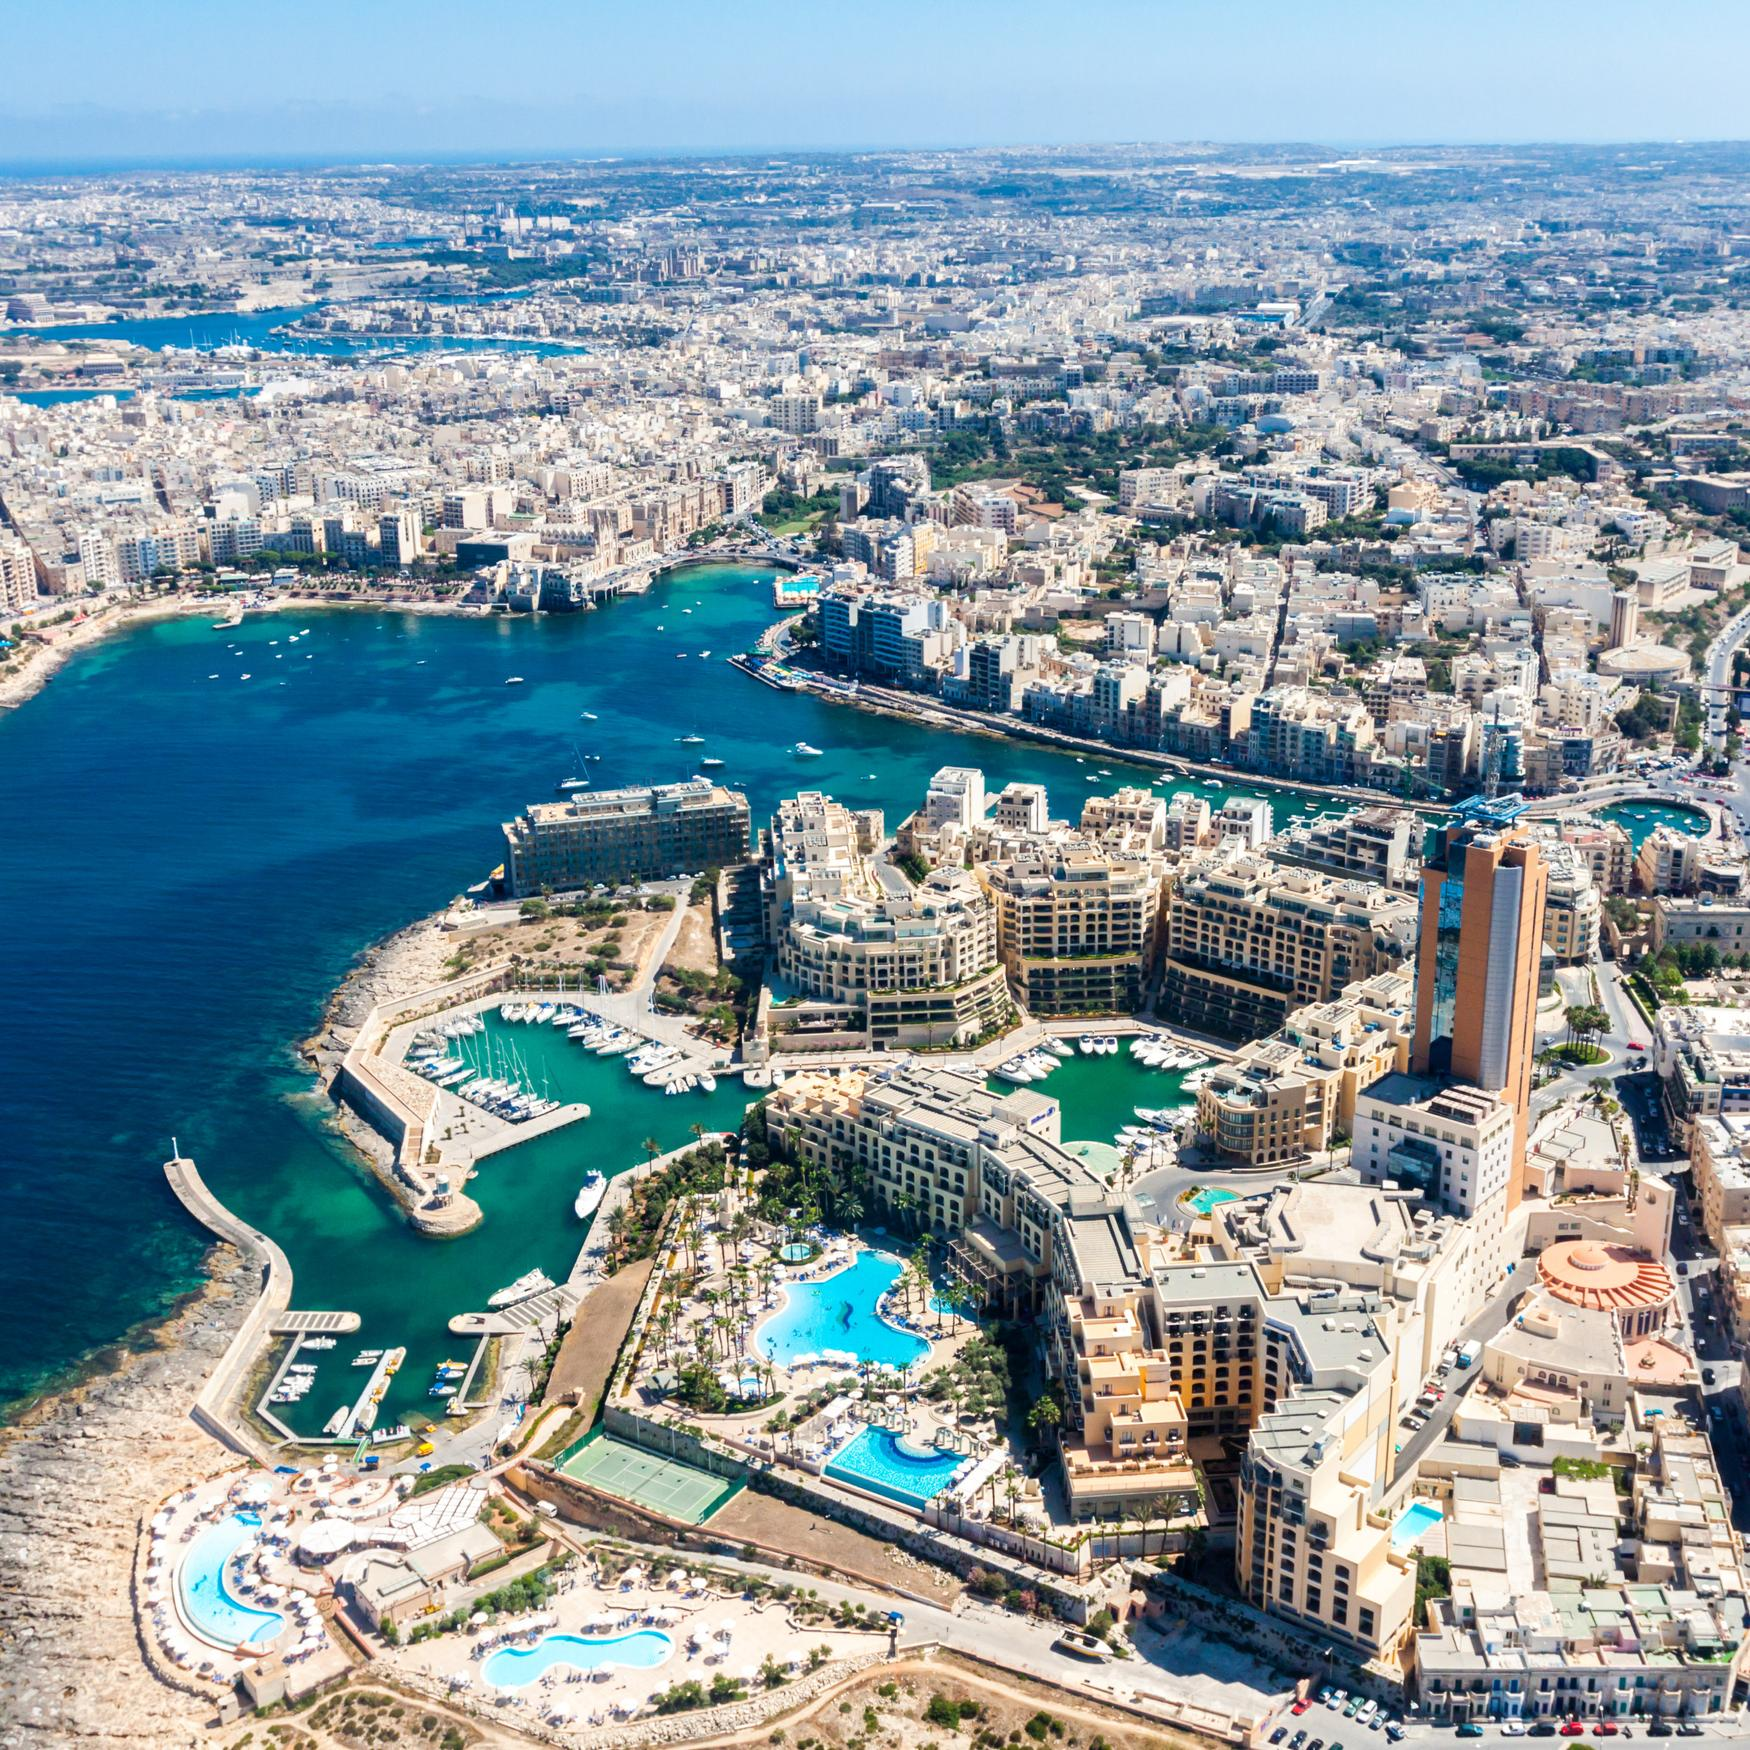 Hotels in Malta - Search for hotels on KAYAK